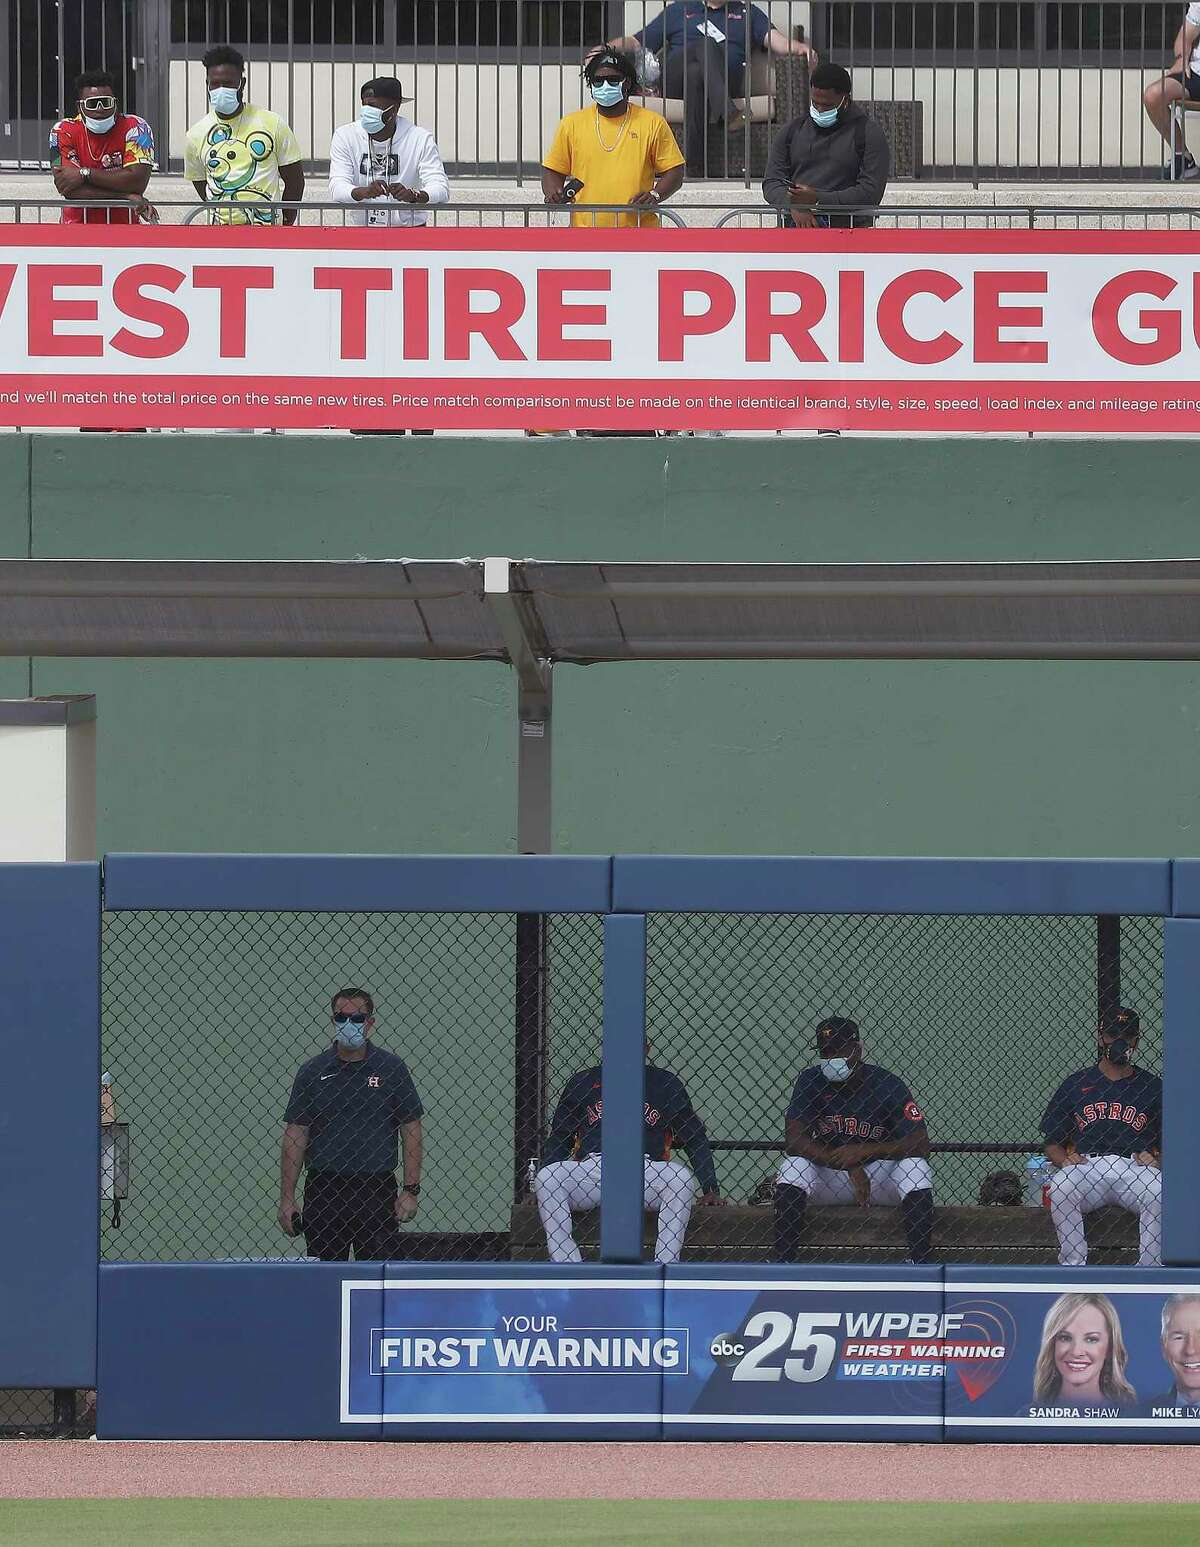 Houston Astros pitcher Framber Valdez (59) and other Astros pitchers stand in street clothes above the Astros bullpen during the first inning of an MLB spring training game at Ballpark of the Palm Beaches in West Palm Beach, Florida, Sunday, February 28, 2021.